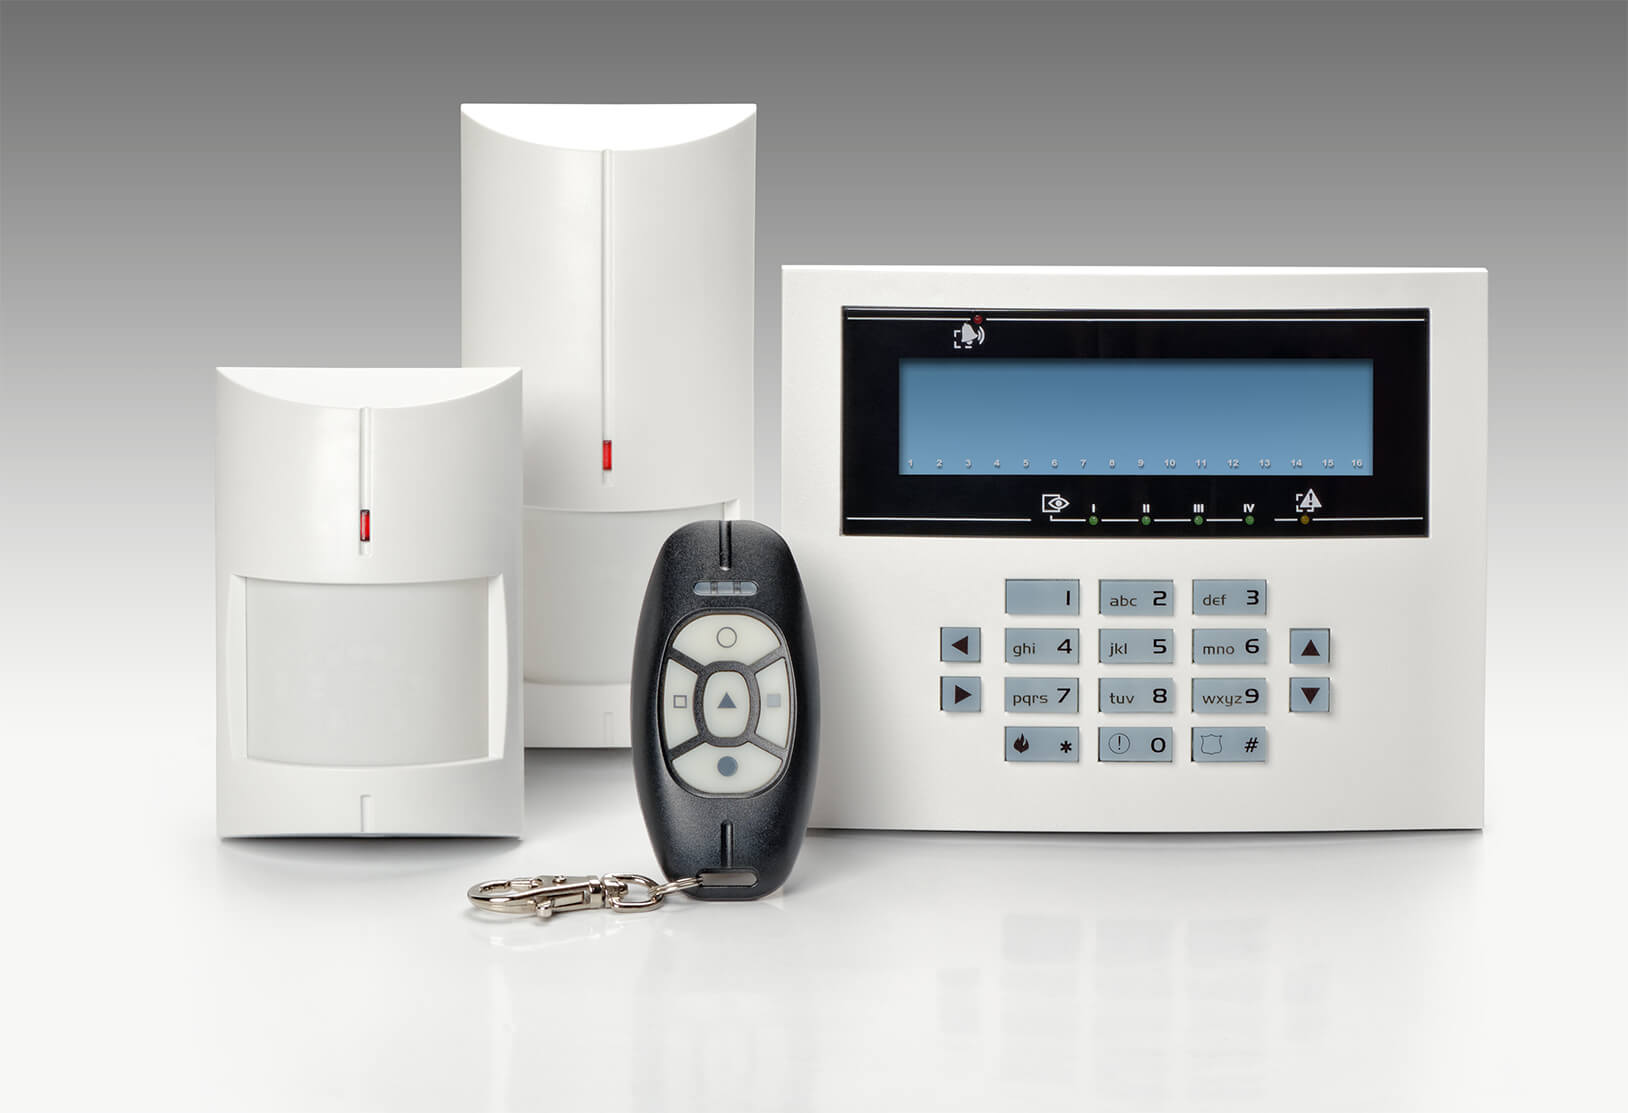 Commercial Burglar Alarms For Business in Castelnau SW13  - Local Castelnau SW13 burglar alarm company.Call 02078872244 - Dedicated to Safety & Security. Companies, shops and homes ..